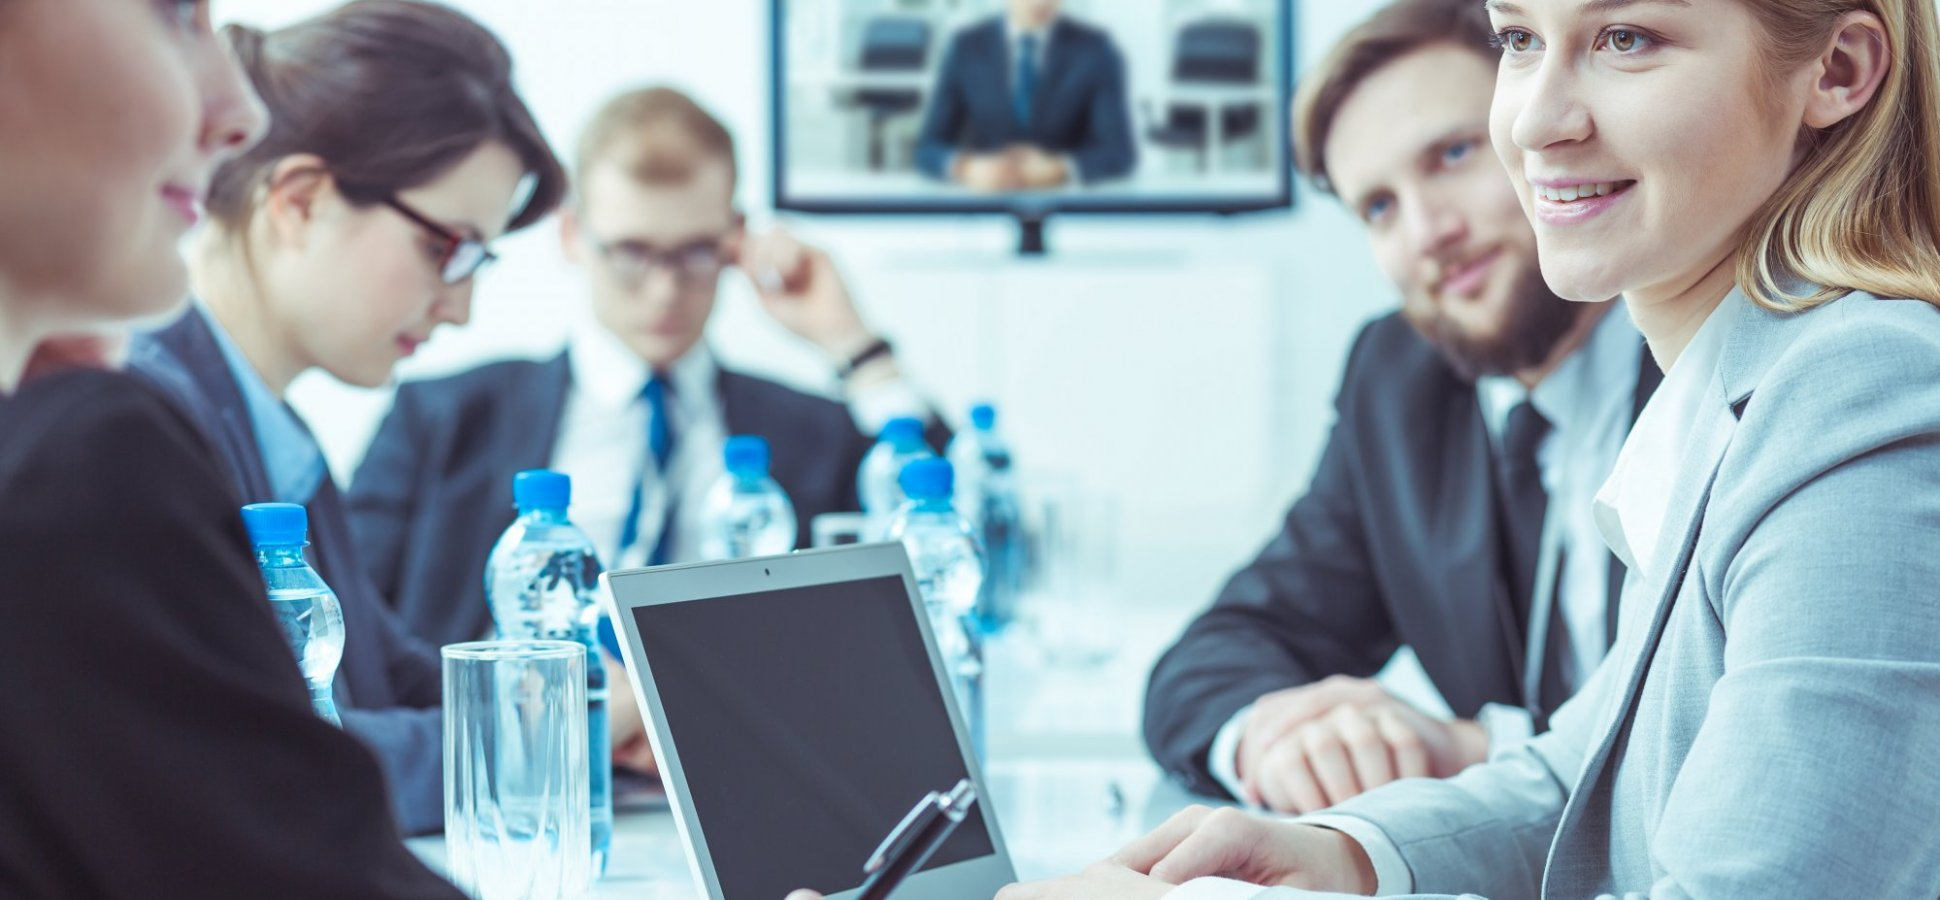 Lessons for First Time CEOs Choosing Board Members - Part 2